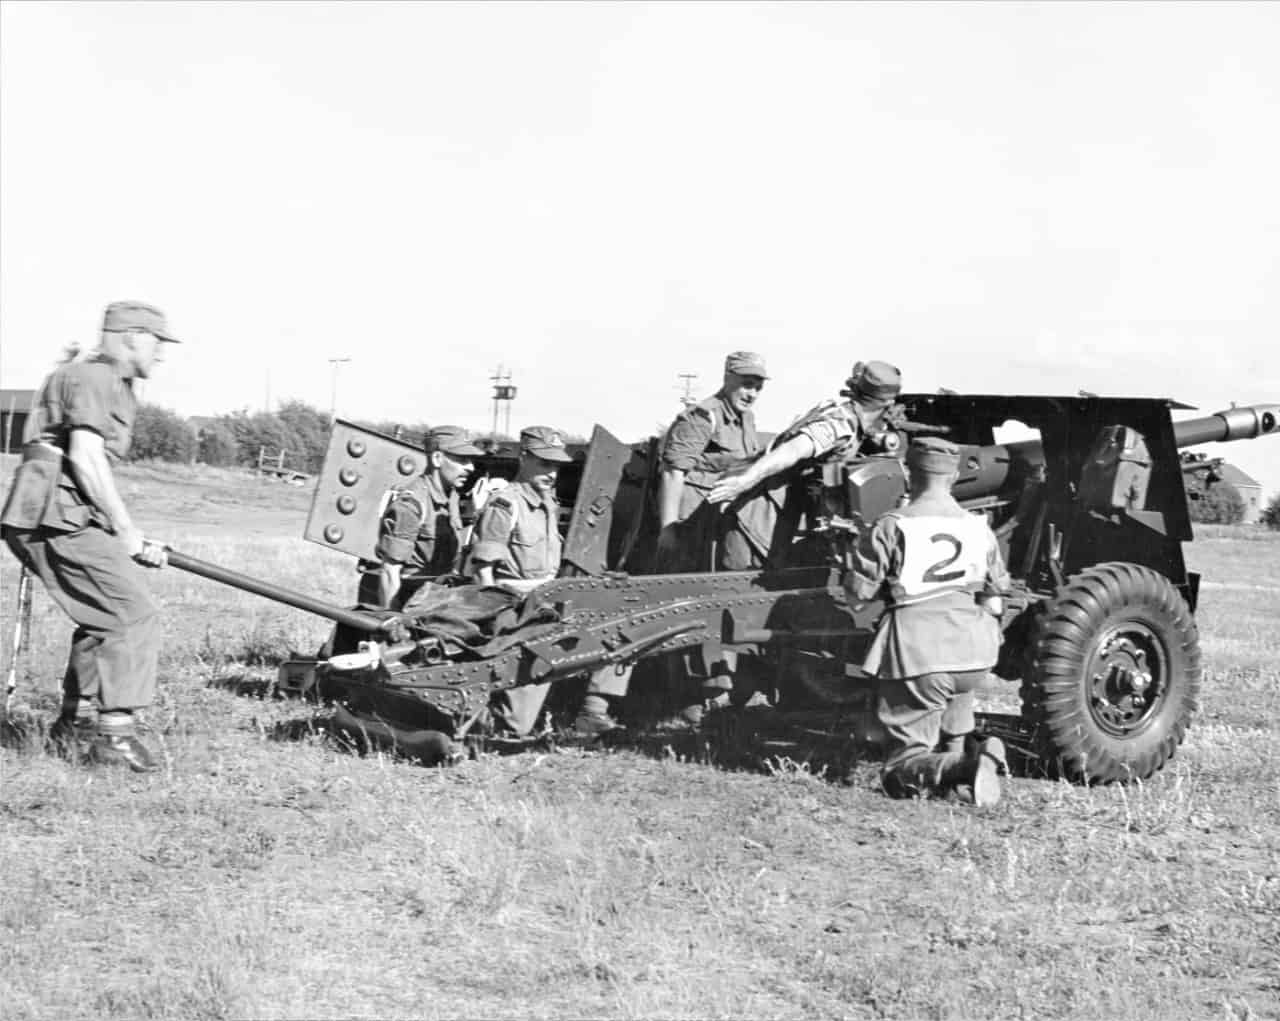 Camp-Shilo-25-Pounder-put-into-action-late-40s